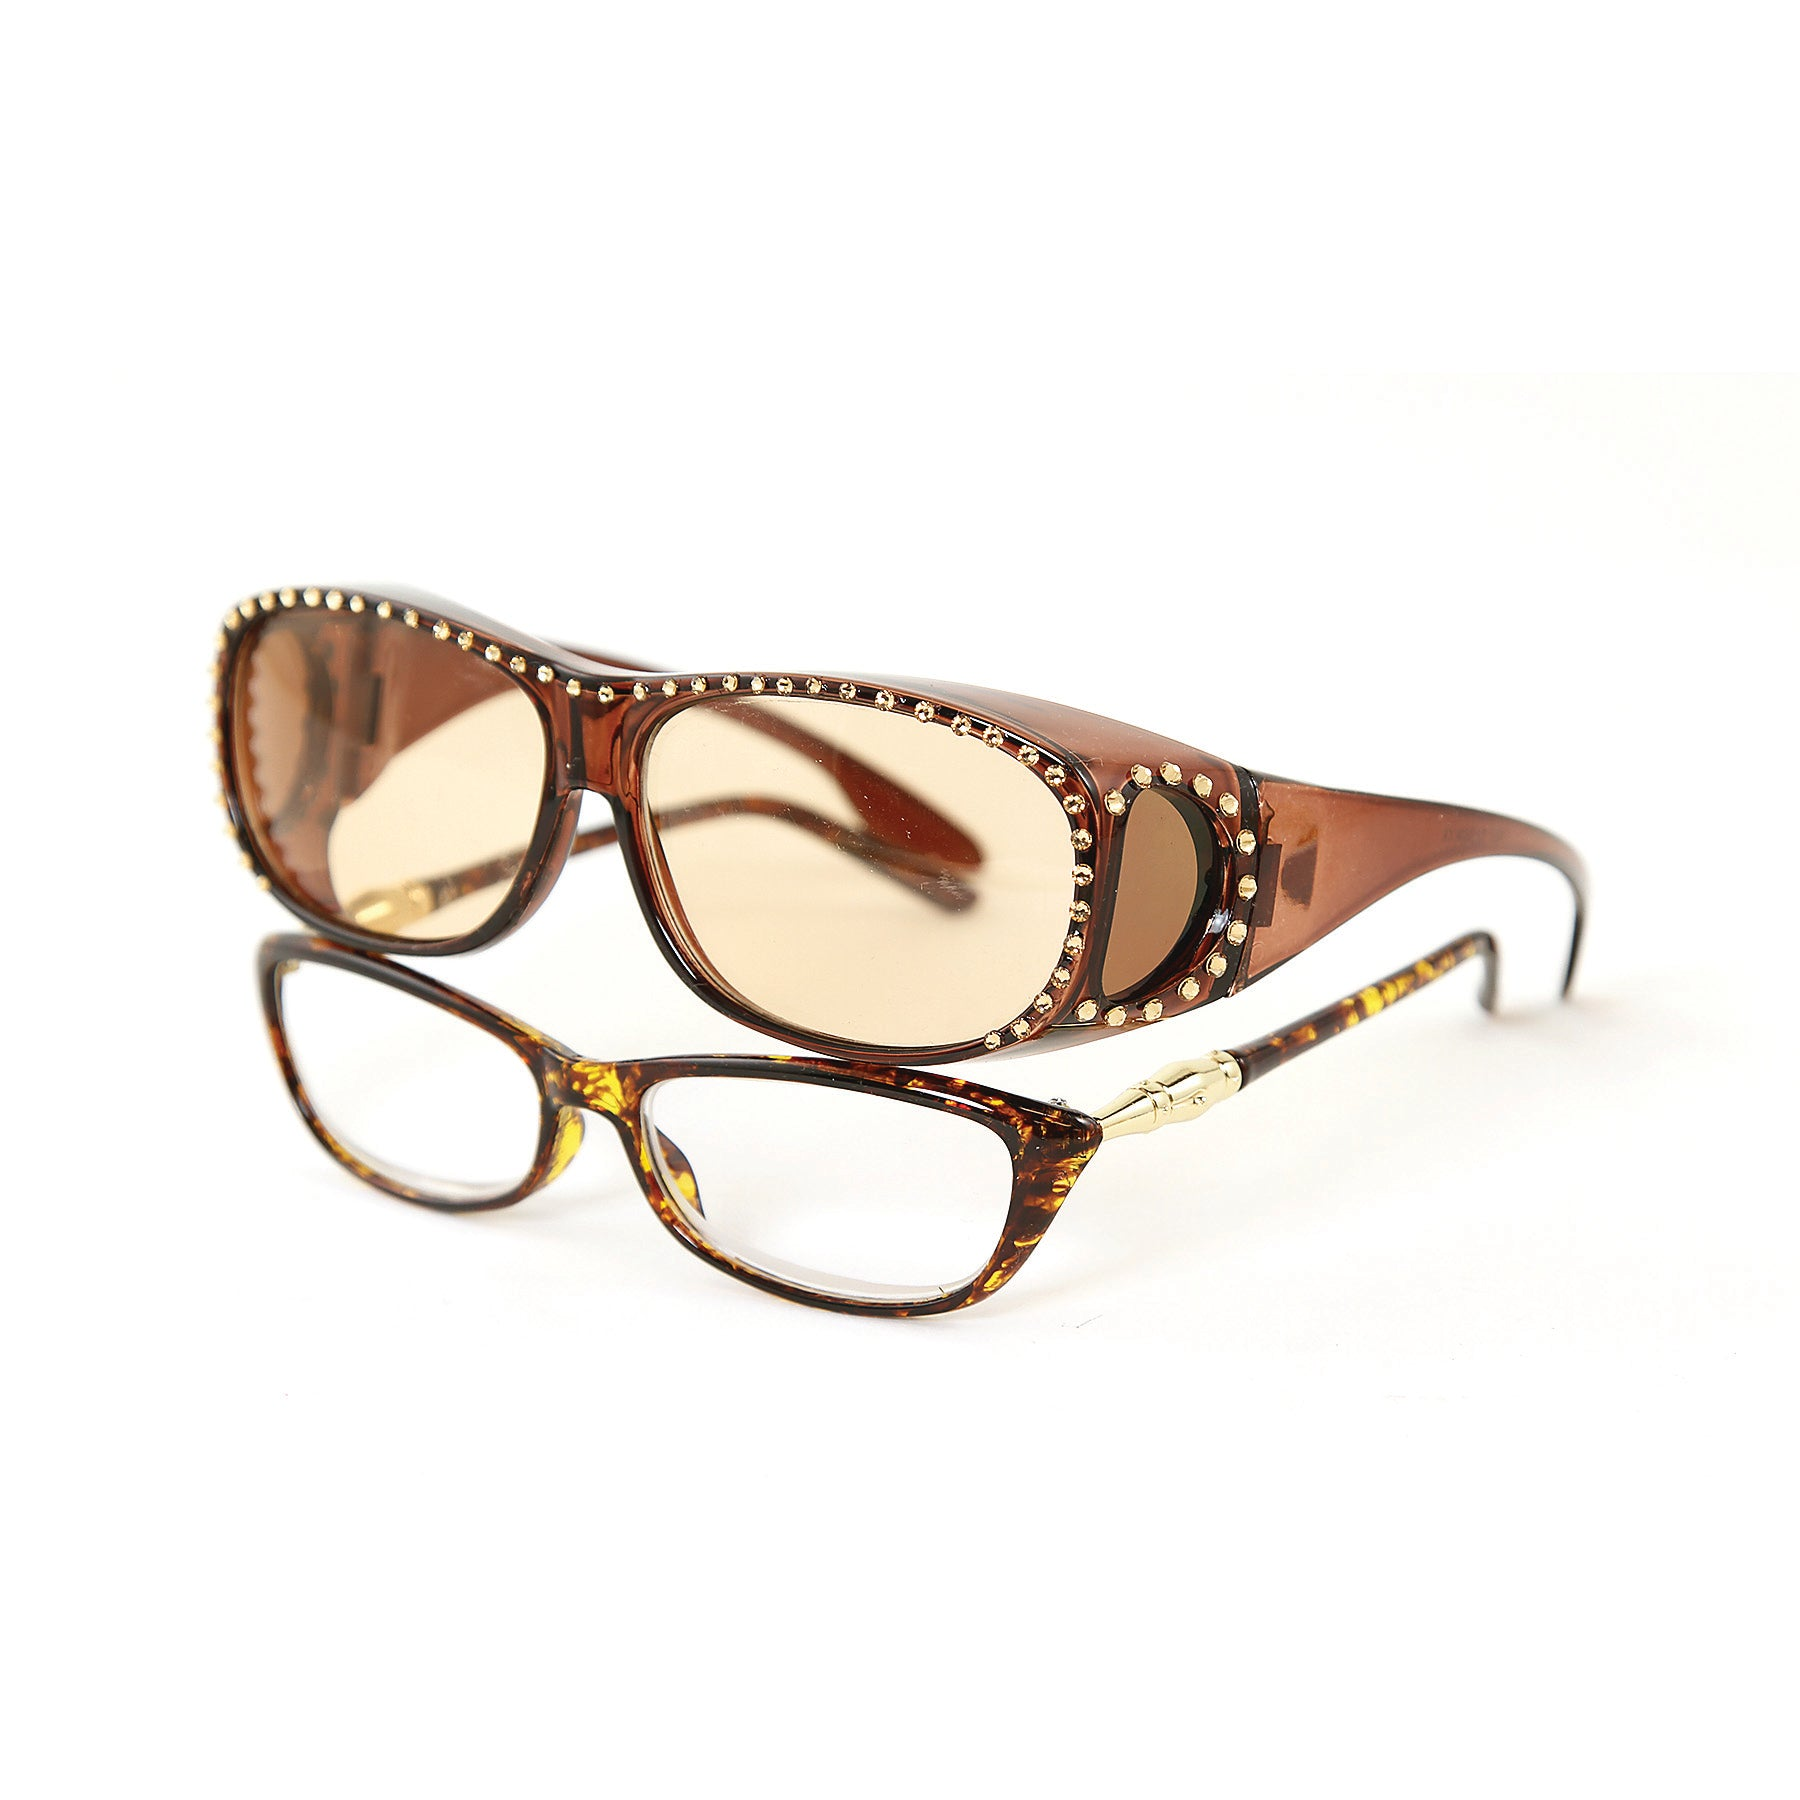 Sunglasses Made with Swarovski Elements, brown color, side view, 2 piece view